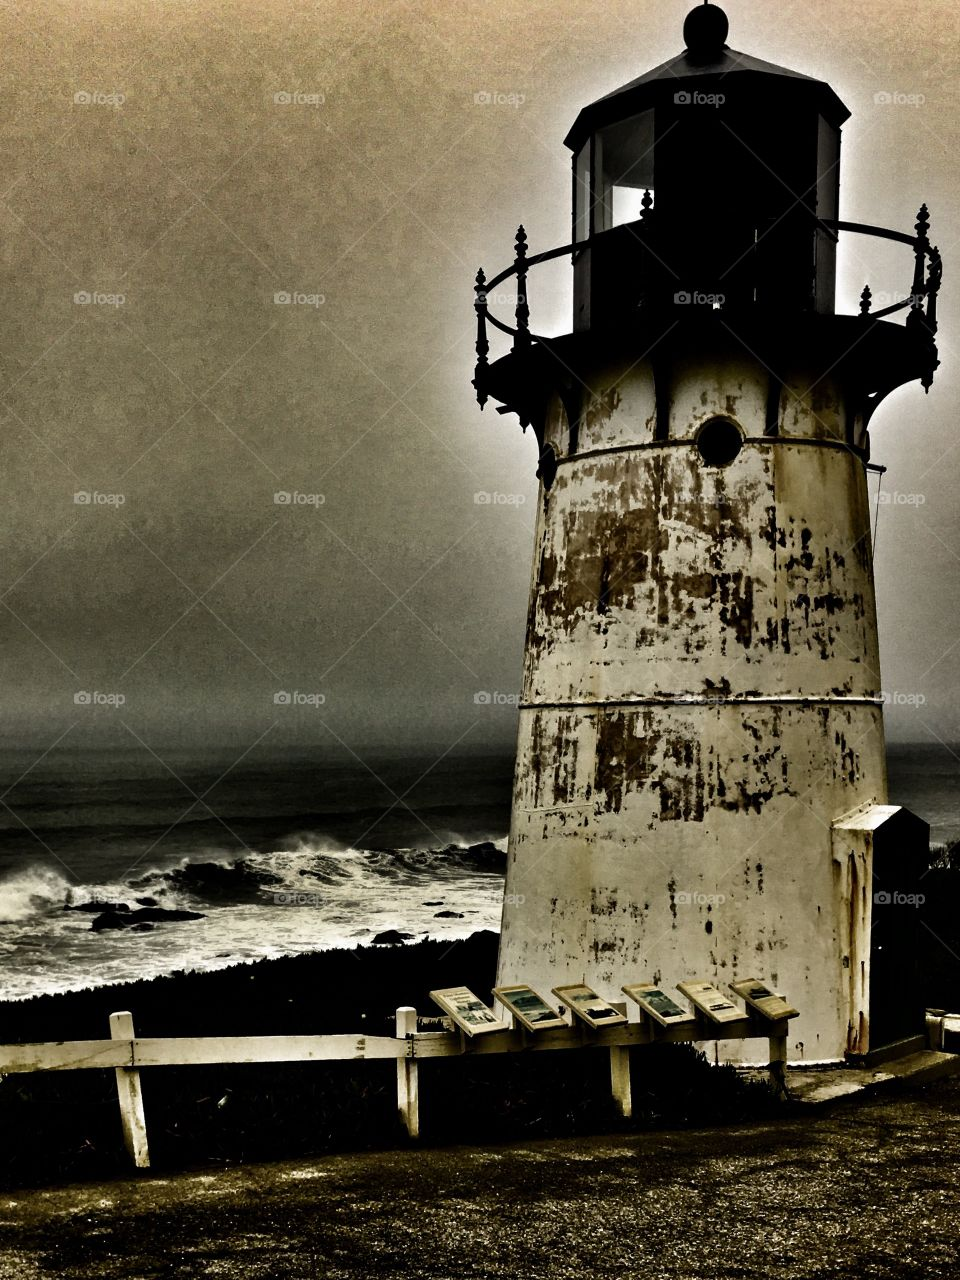 Stormy seas and a lighthouse all in black and white.